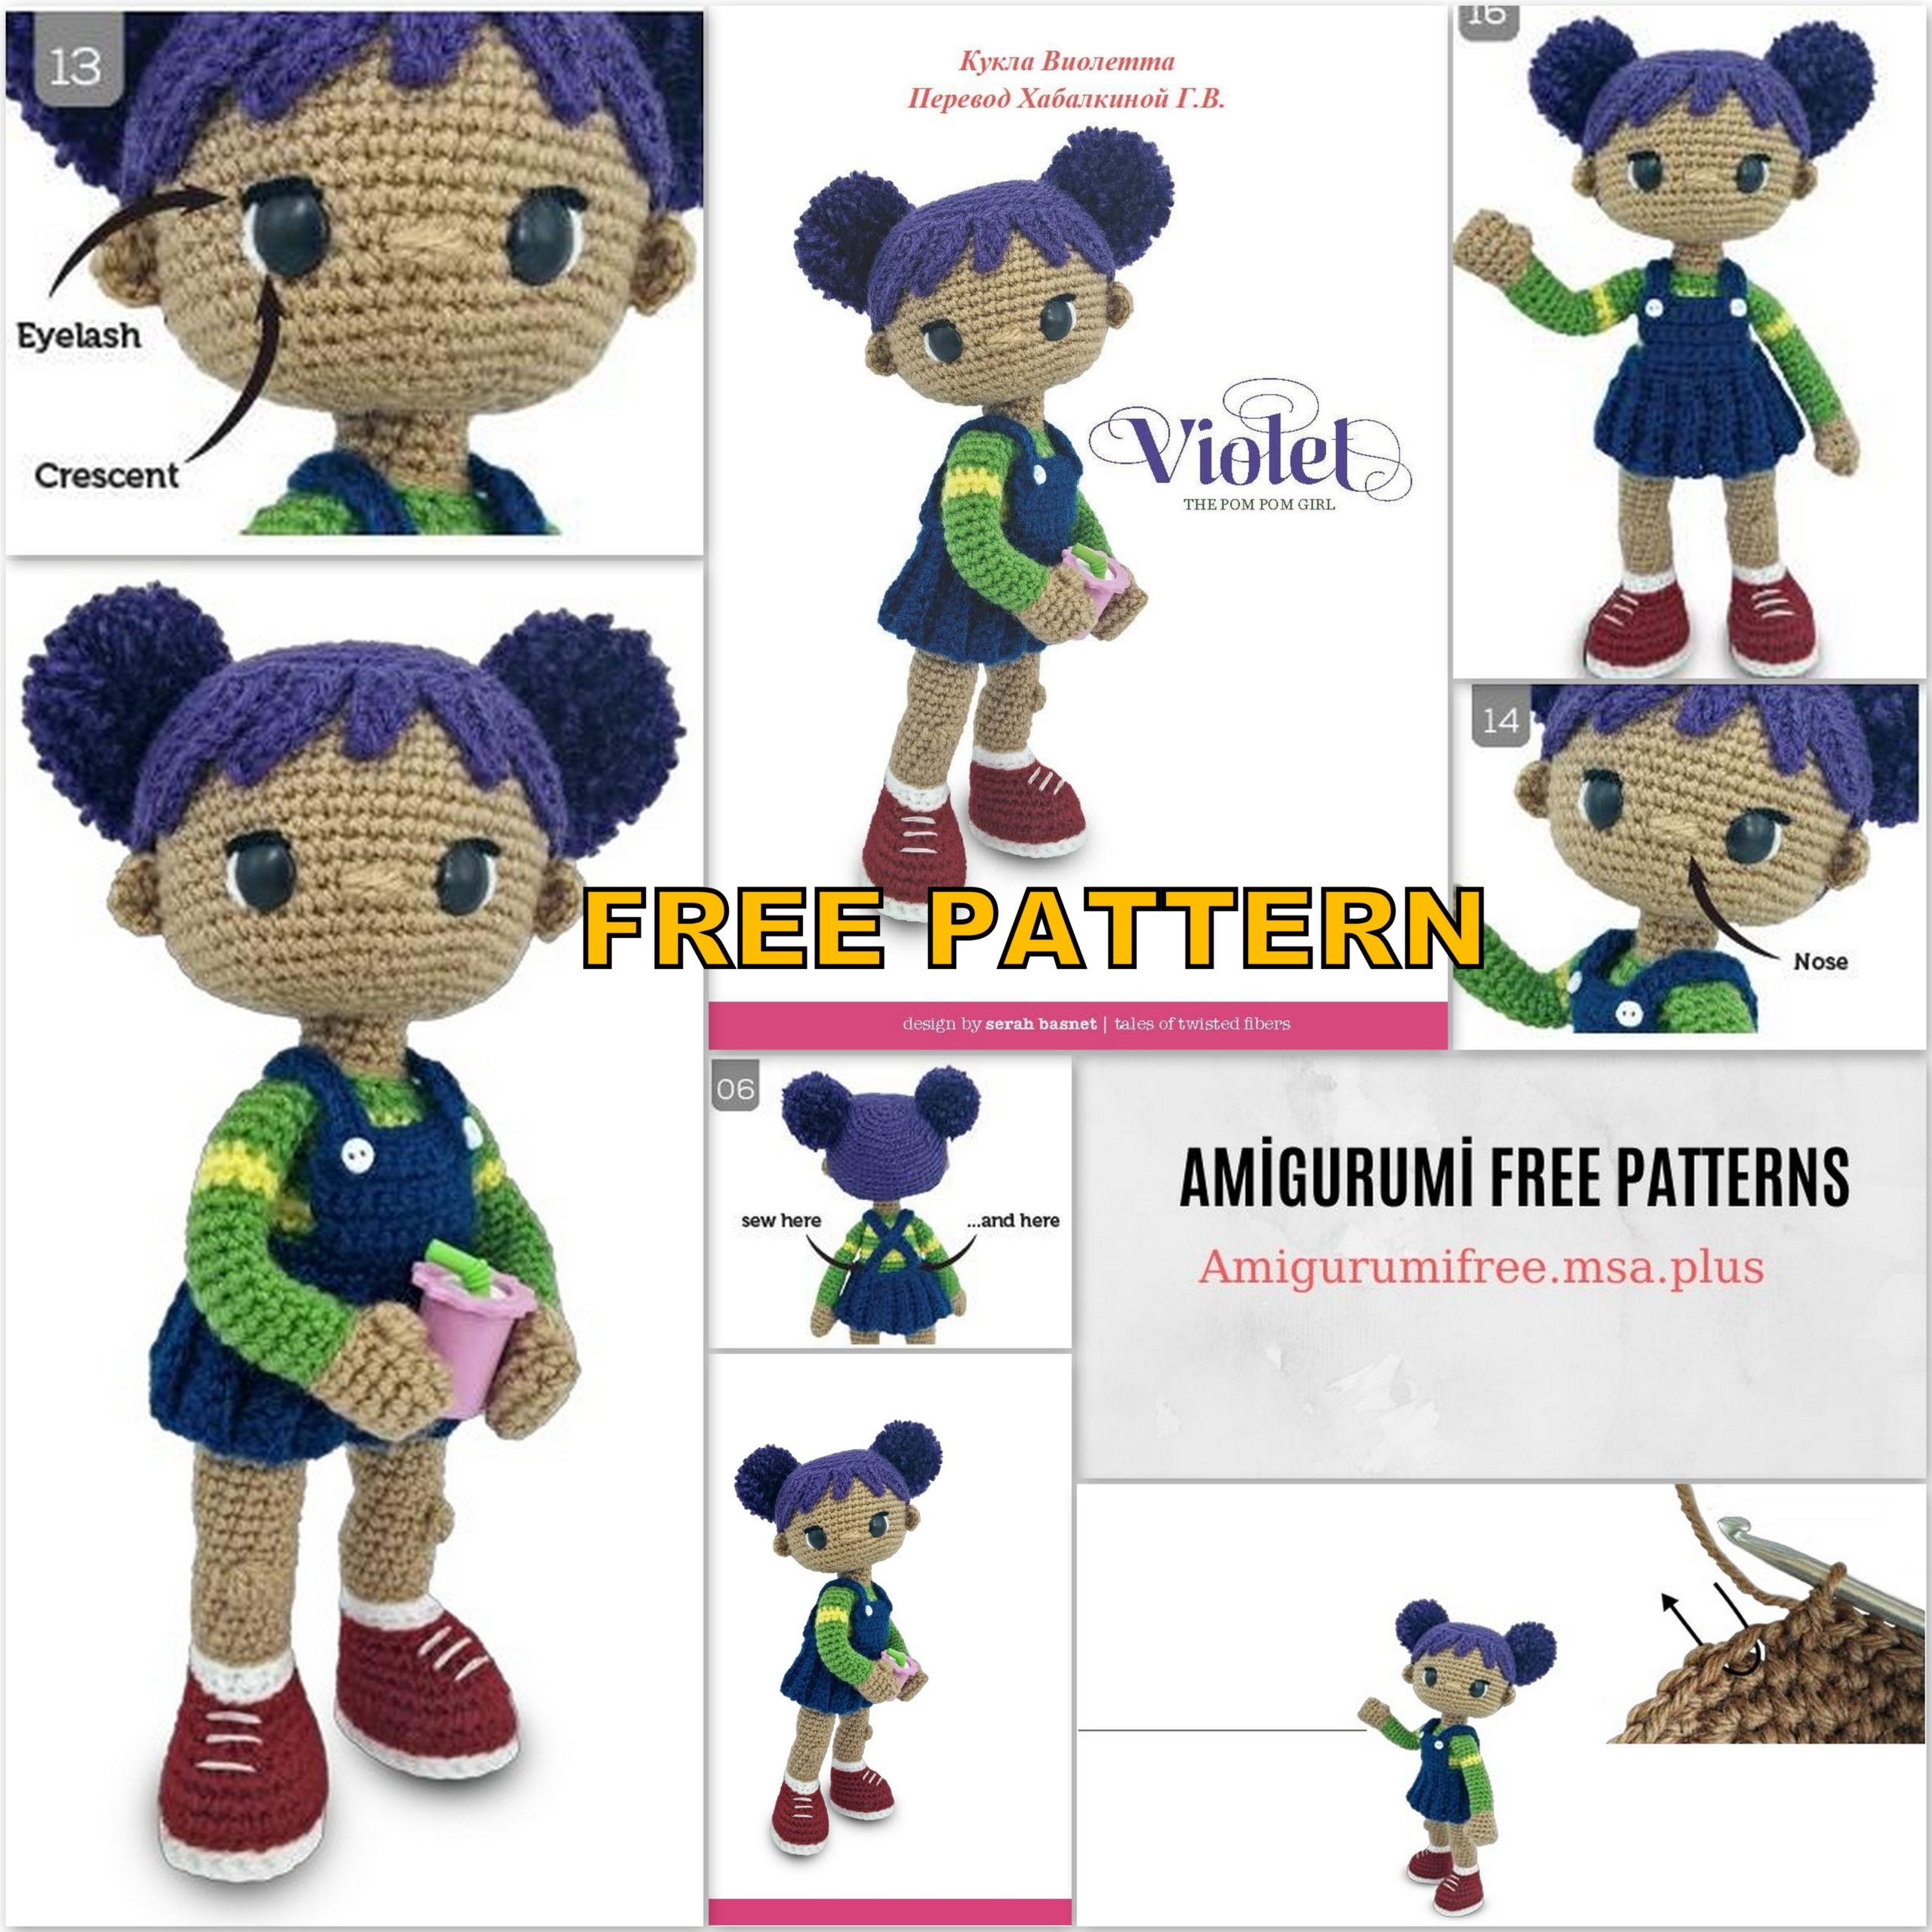 Amy the Amigurumi Doll - A Free Crochet Pattern - Grace and Yarn | 2560x2560